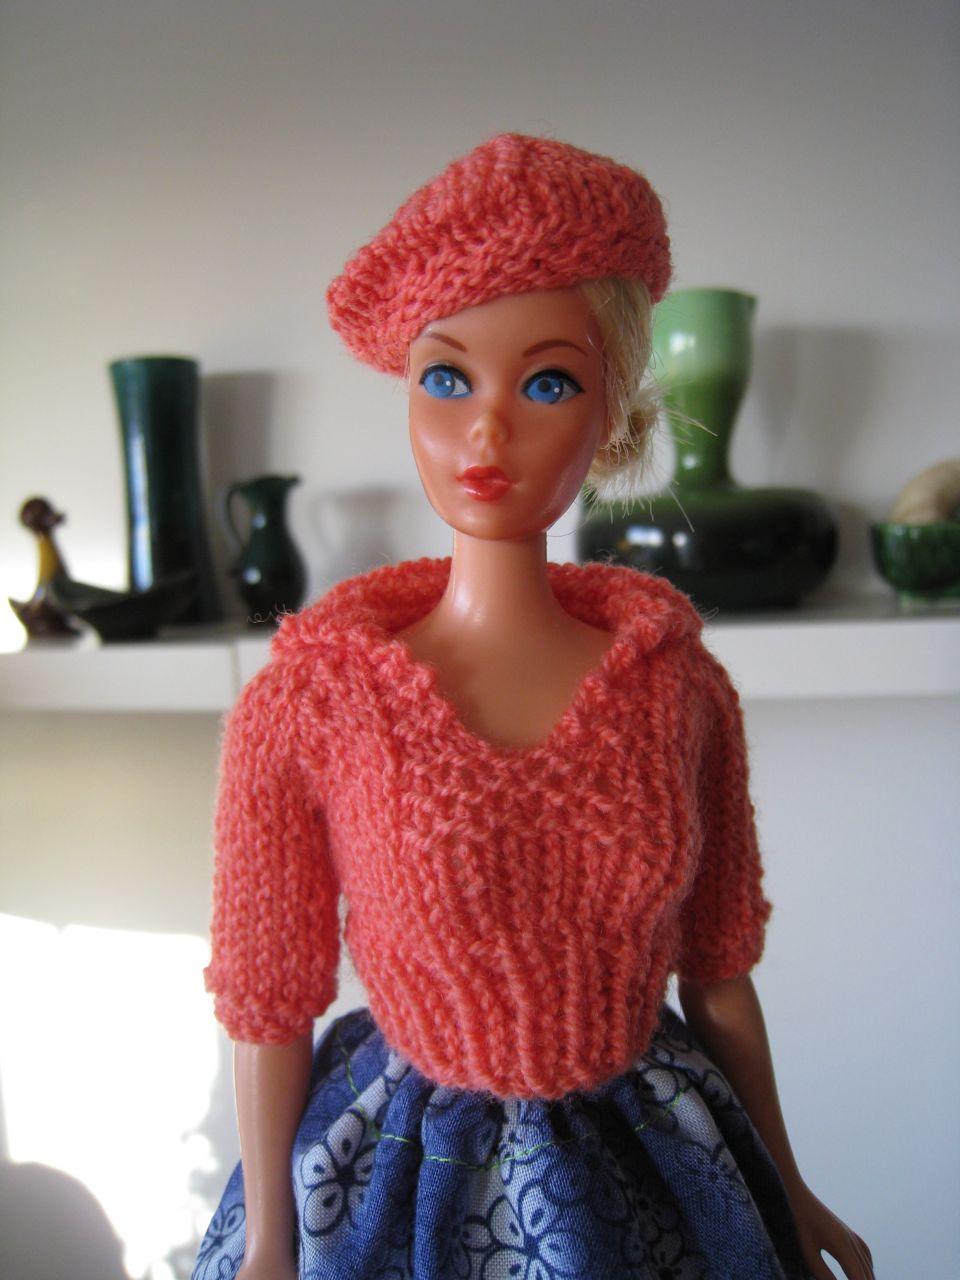 Best Barbie Knits: New Pullover with Sailor Collar